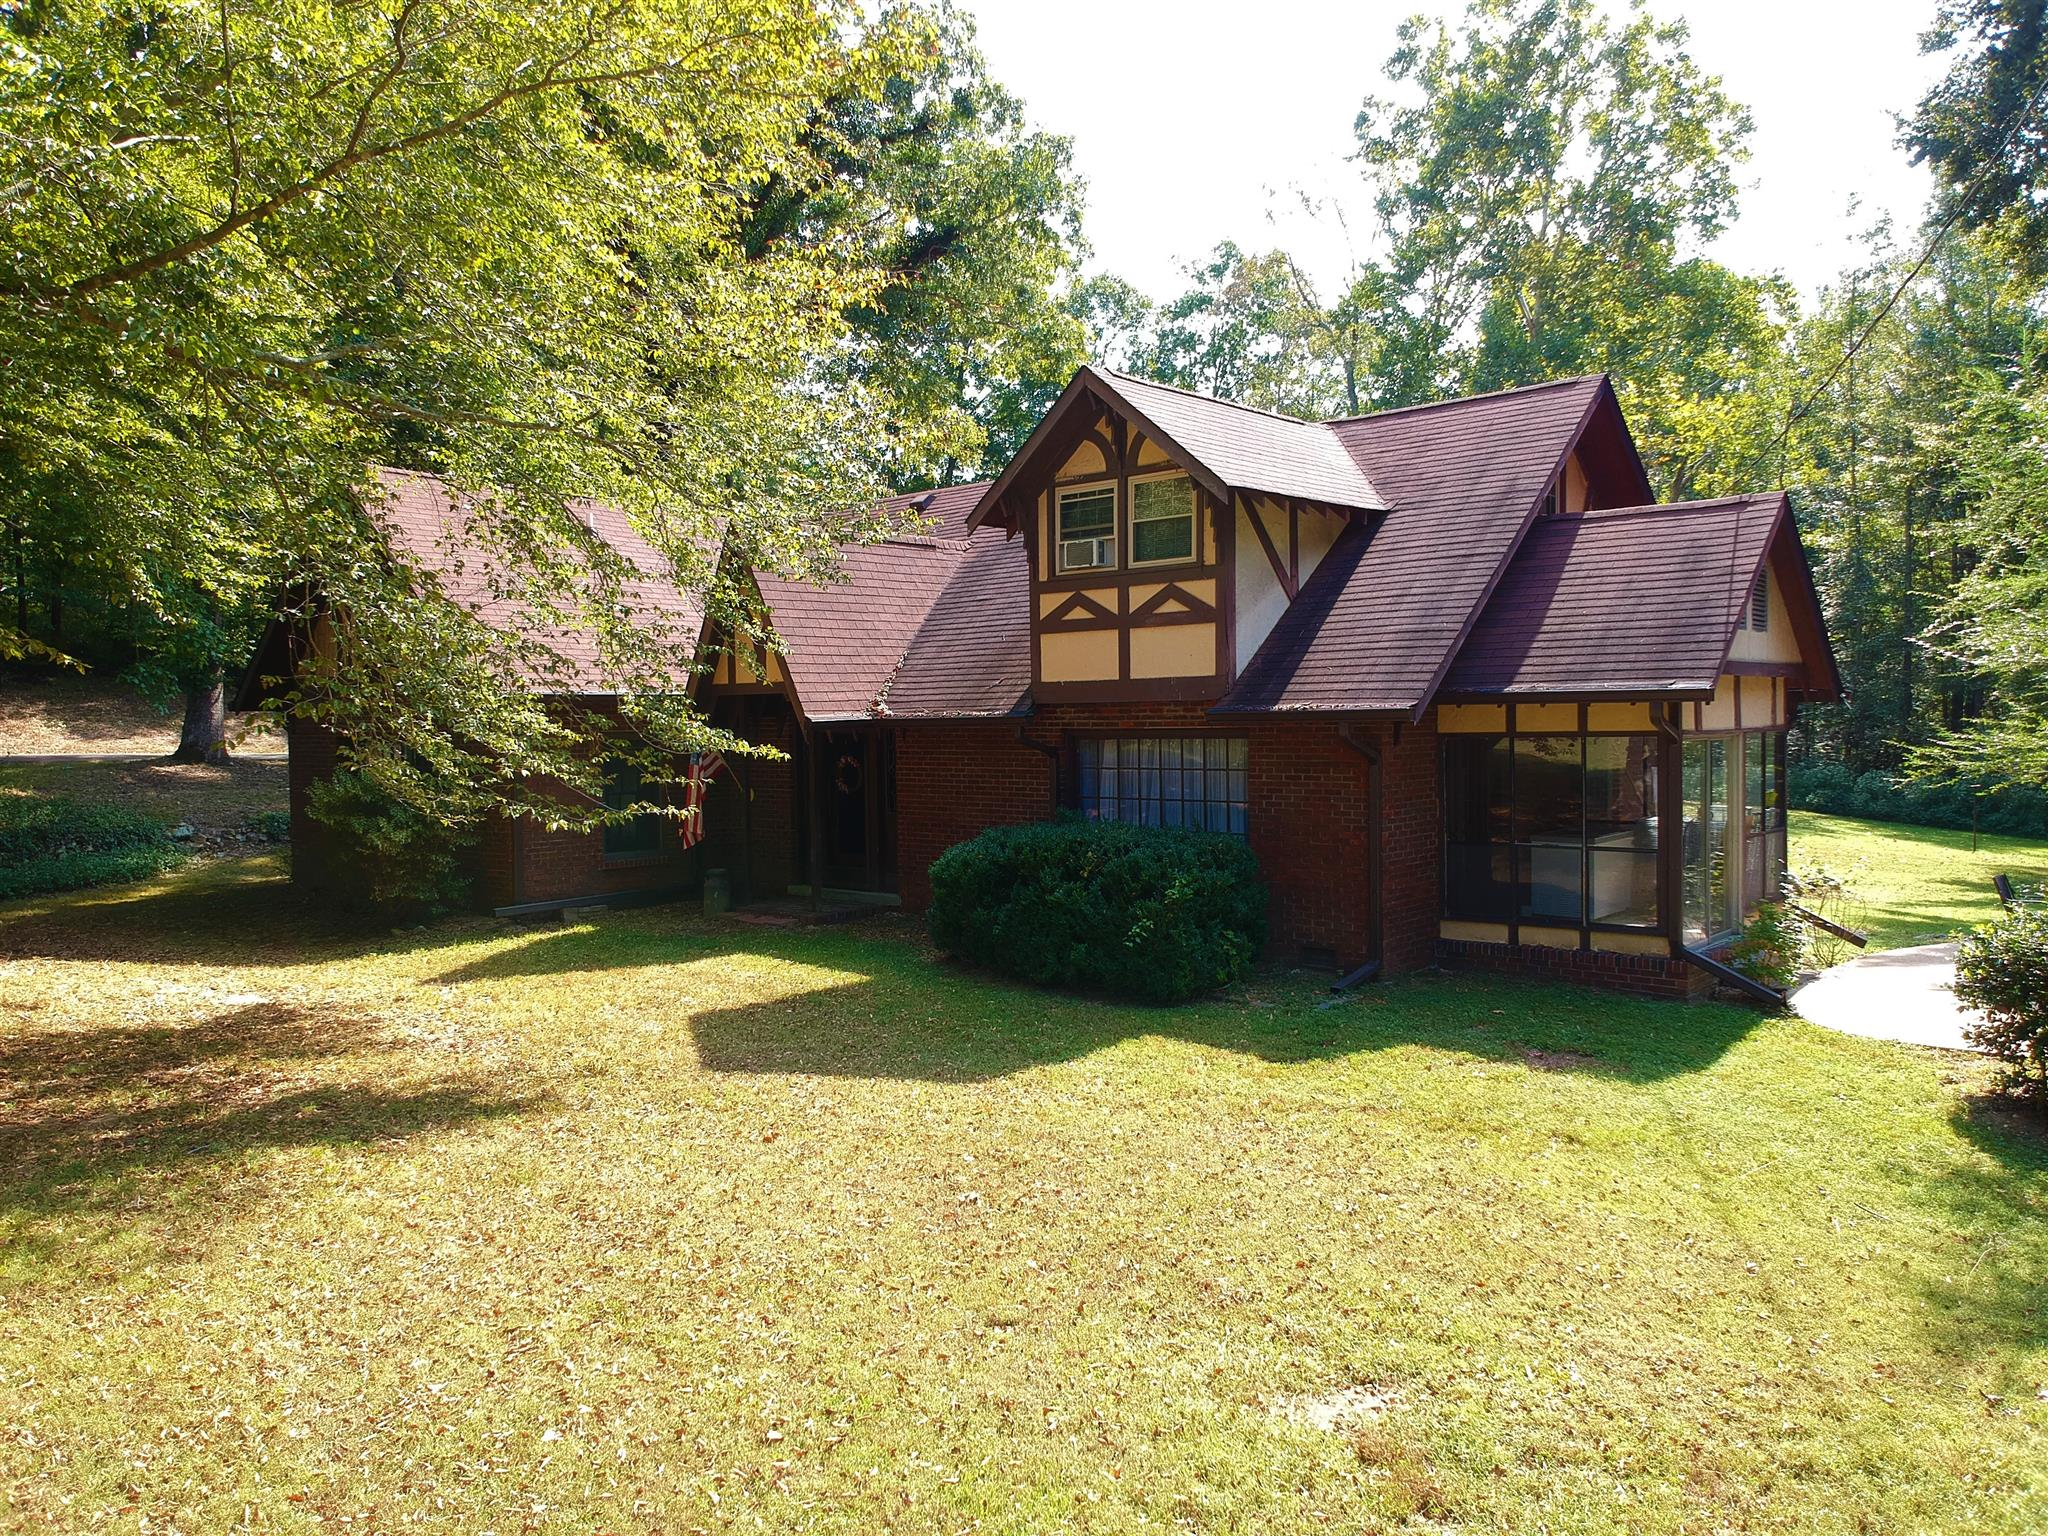 1329 Fall River Rd, Goodspring, TN 38460 - Goodspring, TN real estate listing